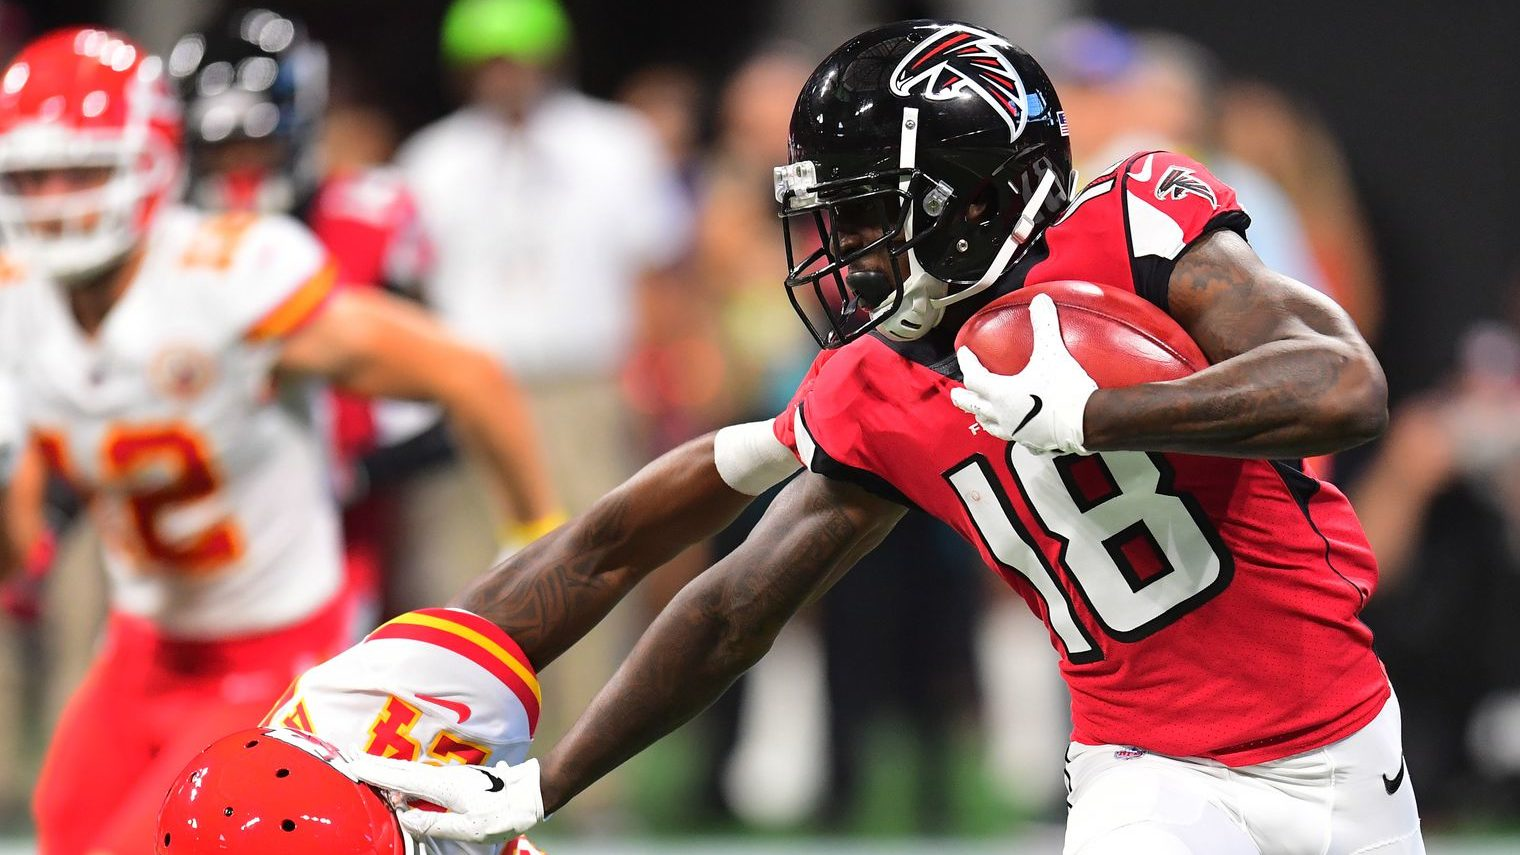 """Quick Hits from Week 3   Sept. 24, 2018  @FootballNuke  For the week 3 postmortem, I did some stacking. I stacked guys that are for real and should be in your lineup the rest of the season. I stacked some guys to keep, that aren't quite reliable yet but are worthy of a flex spot in the right matchup. There is a stack of players to go get, and lastly some players to drop.  For Real  –    Pat Mahomes  – a lot of analysts thought the toughest part of Mahomes' schedule would be the first four games of the year. Let that sink in….   Calvin Ridley  – What a coming out party for Ridley this week – 146 yards and three TDs! Ridley is the legit WR2 on the Falcons. The only question now is will he have better numbers than Julio at year-end?   Antonio Callaway  –  Baker Mayfield  threw to Callaway a LOT in the preseason. With the departure of  Josh Gordon , the path is clear for Callaway, who was one drop away from having a 100 yards and a touchdown. Landry will be the target monster the rest of the way. Callaway will be the high upside, week winner.   Kerryon Johnson  – The Lions are realizing they have their starting running back, and it is  not Legarrette Blount . Johnson looked great against the Patriots. The Lions need to keep feeding that beast.  Keep 'em -   Rashaad Penny  – If you have the roster space, Penny is definitely a keeper. I know  Chris Carson  had 32 carries Sunday to Penny's three, but Carson's is injury prone. Keep Penny as the handcuff if you can. P.S. we just don't know when the tables will turn on this situation… but they  will  turn.   Ryan Fitzpatrick  – The """"magic"""" looked like it was lost in the first half of the game against the Steelers tonight, but Fitzy rallied and threw for another 400 yards. The Bucs can't bench this guy for  Jameis Winston  in week five, can they?   Sony Michel  – He got the bulk of the backfield work in the Sunday night game against Detroit. He's a first-round pick and I expect to see more opportunities for Michel as we get fu"""